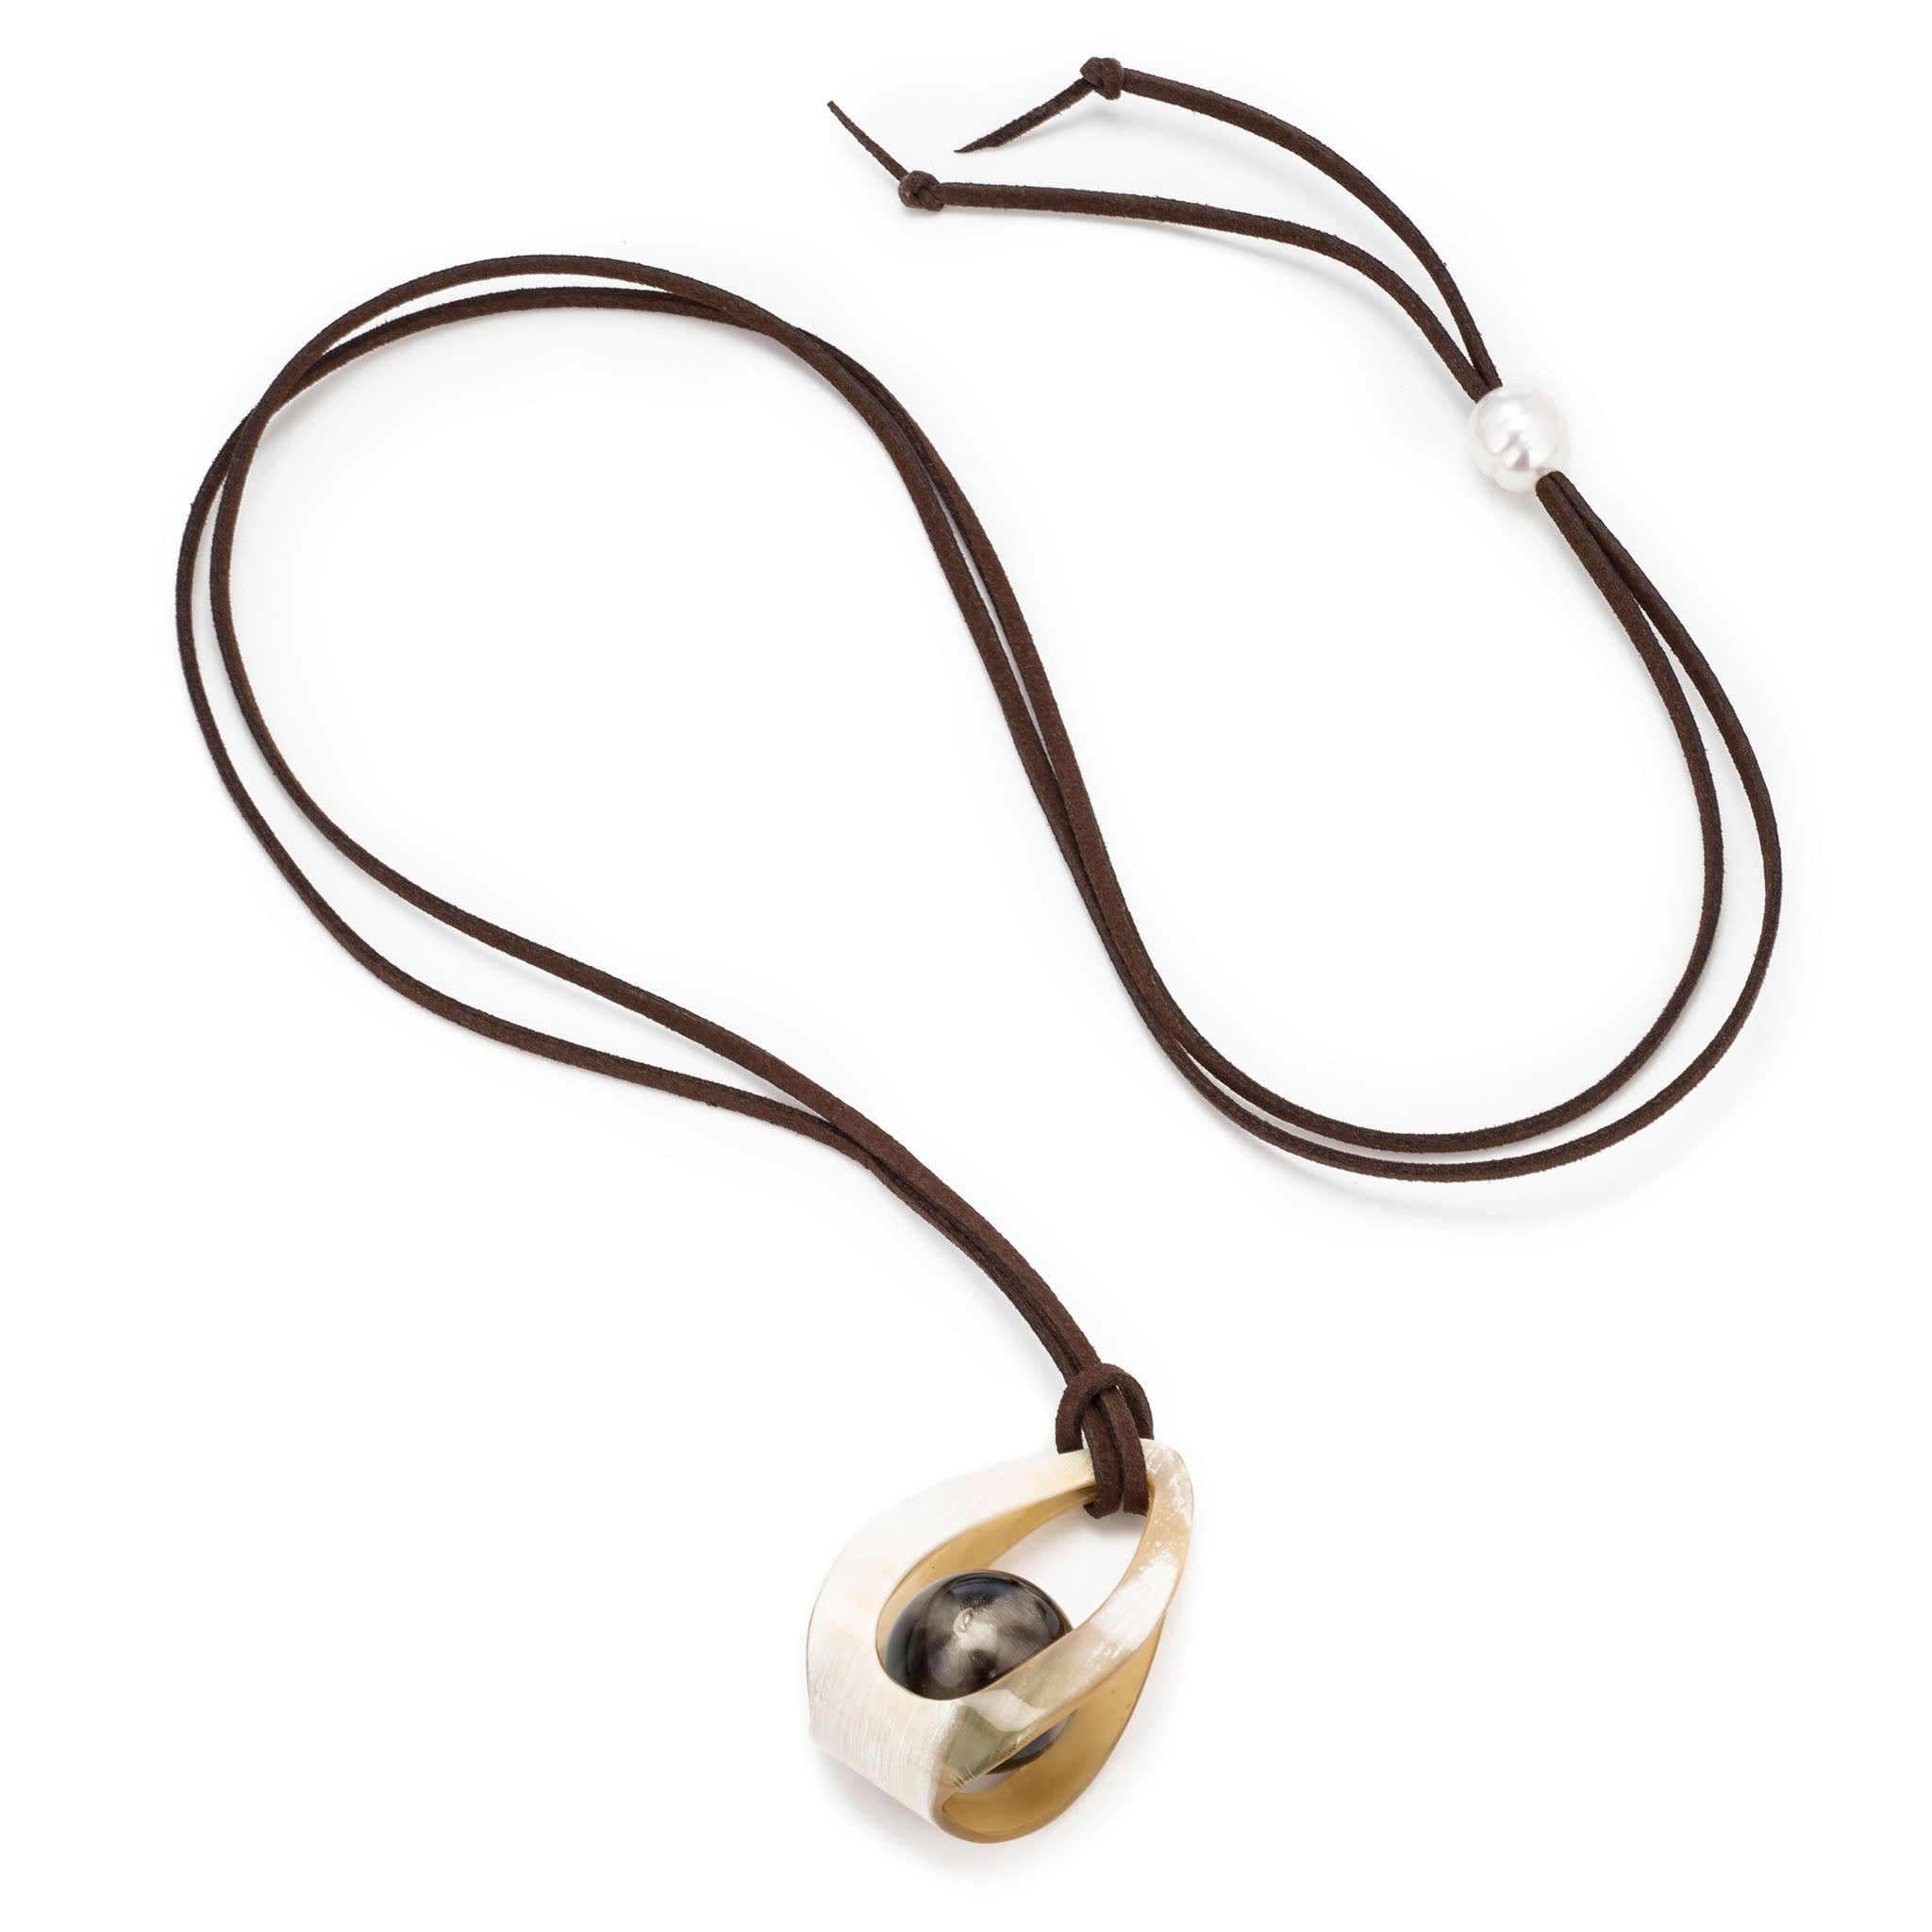 Buffalo Horn Ball in Cage  Pendant on Cord Cord View - Vivo Direct